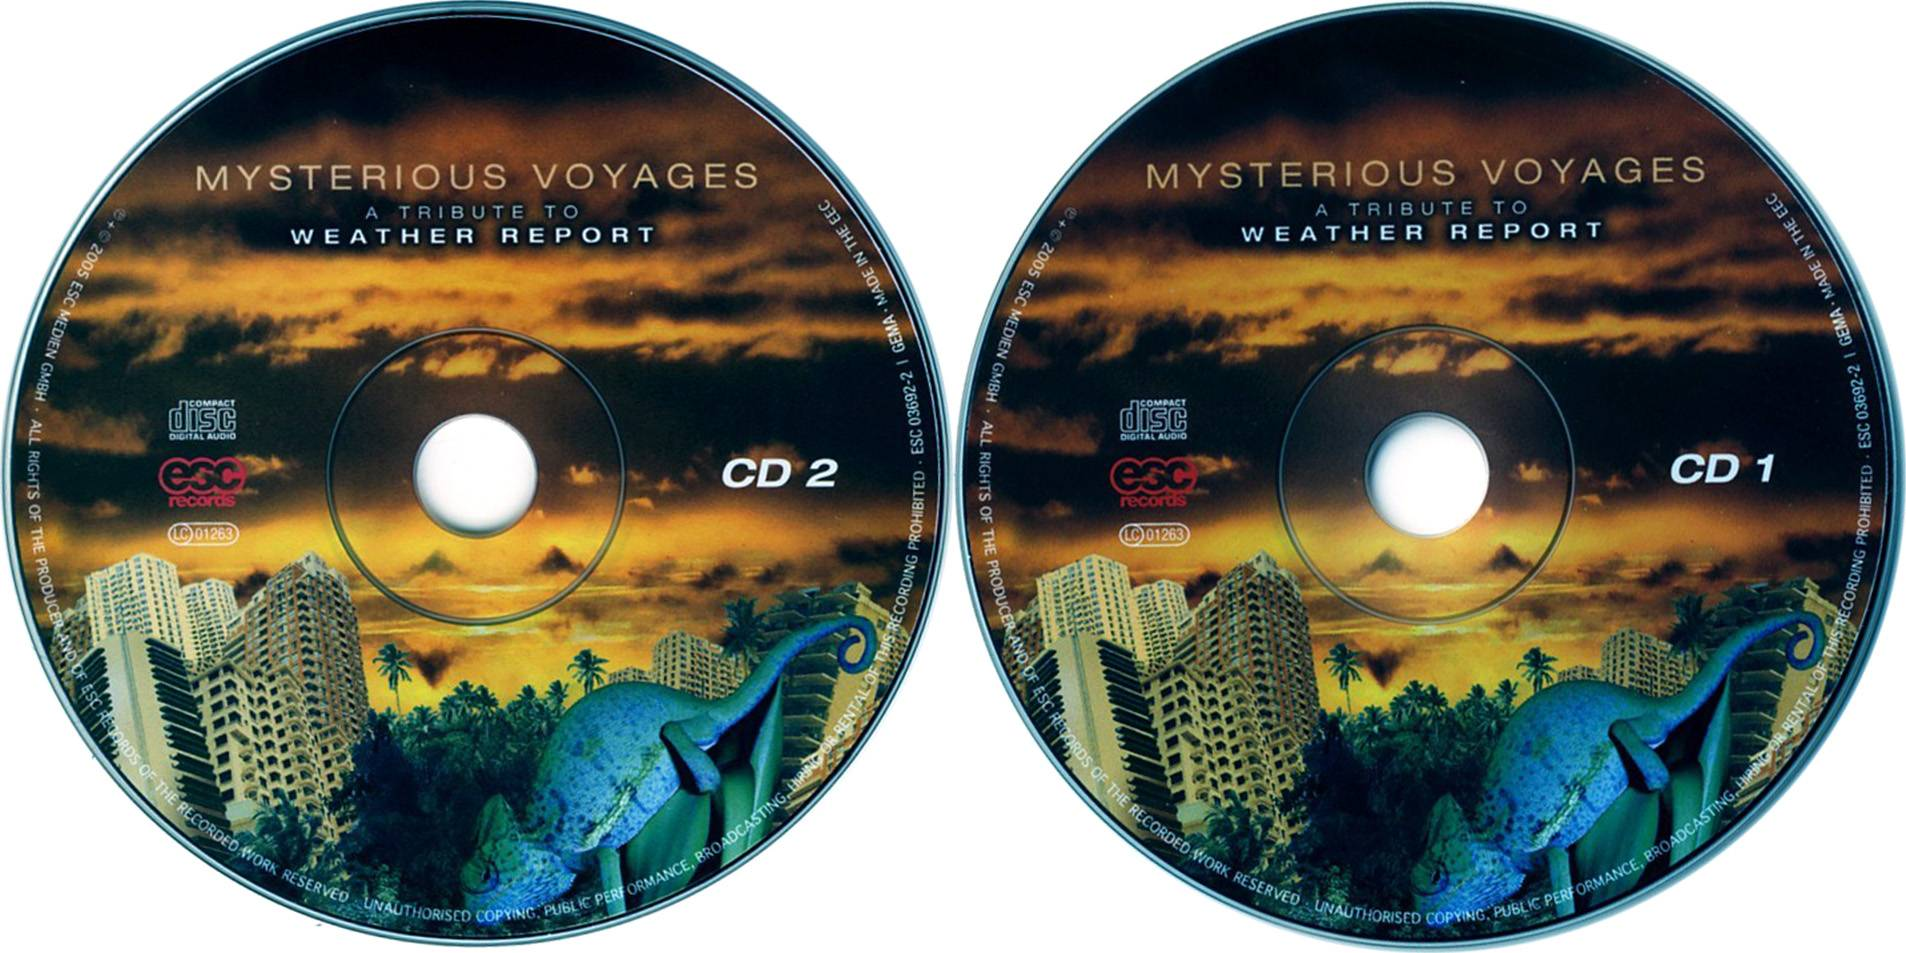 VA - Mysterious Voyages: A Tribute To Weather Report (2005) 2CDs